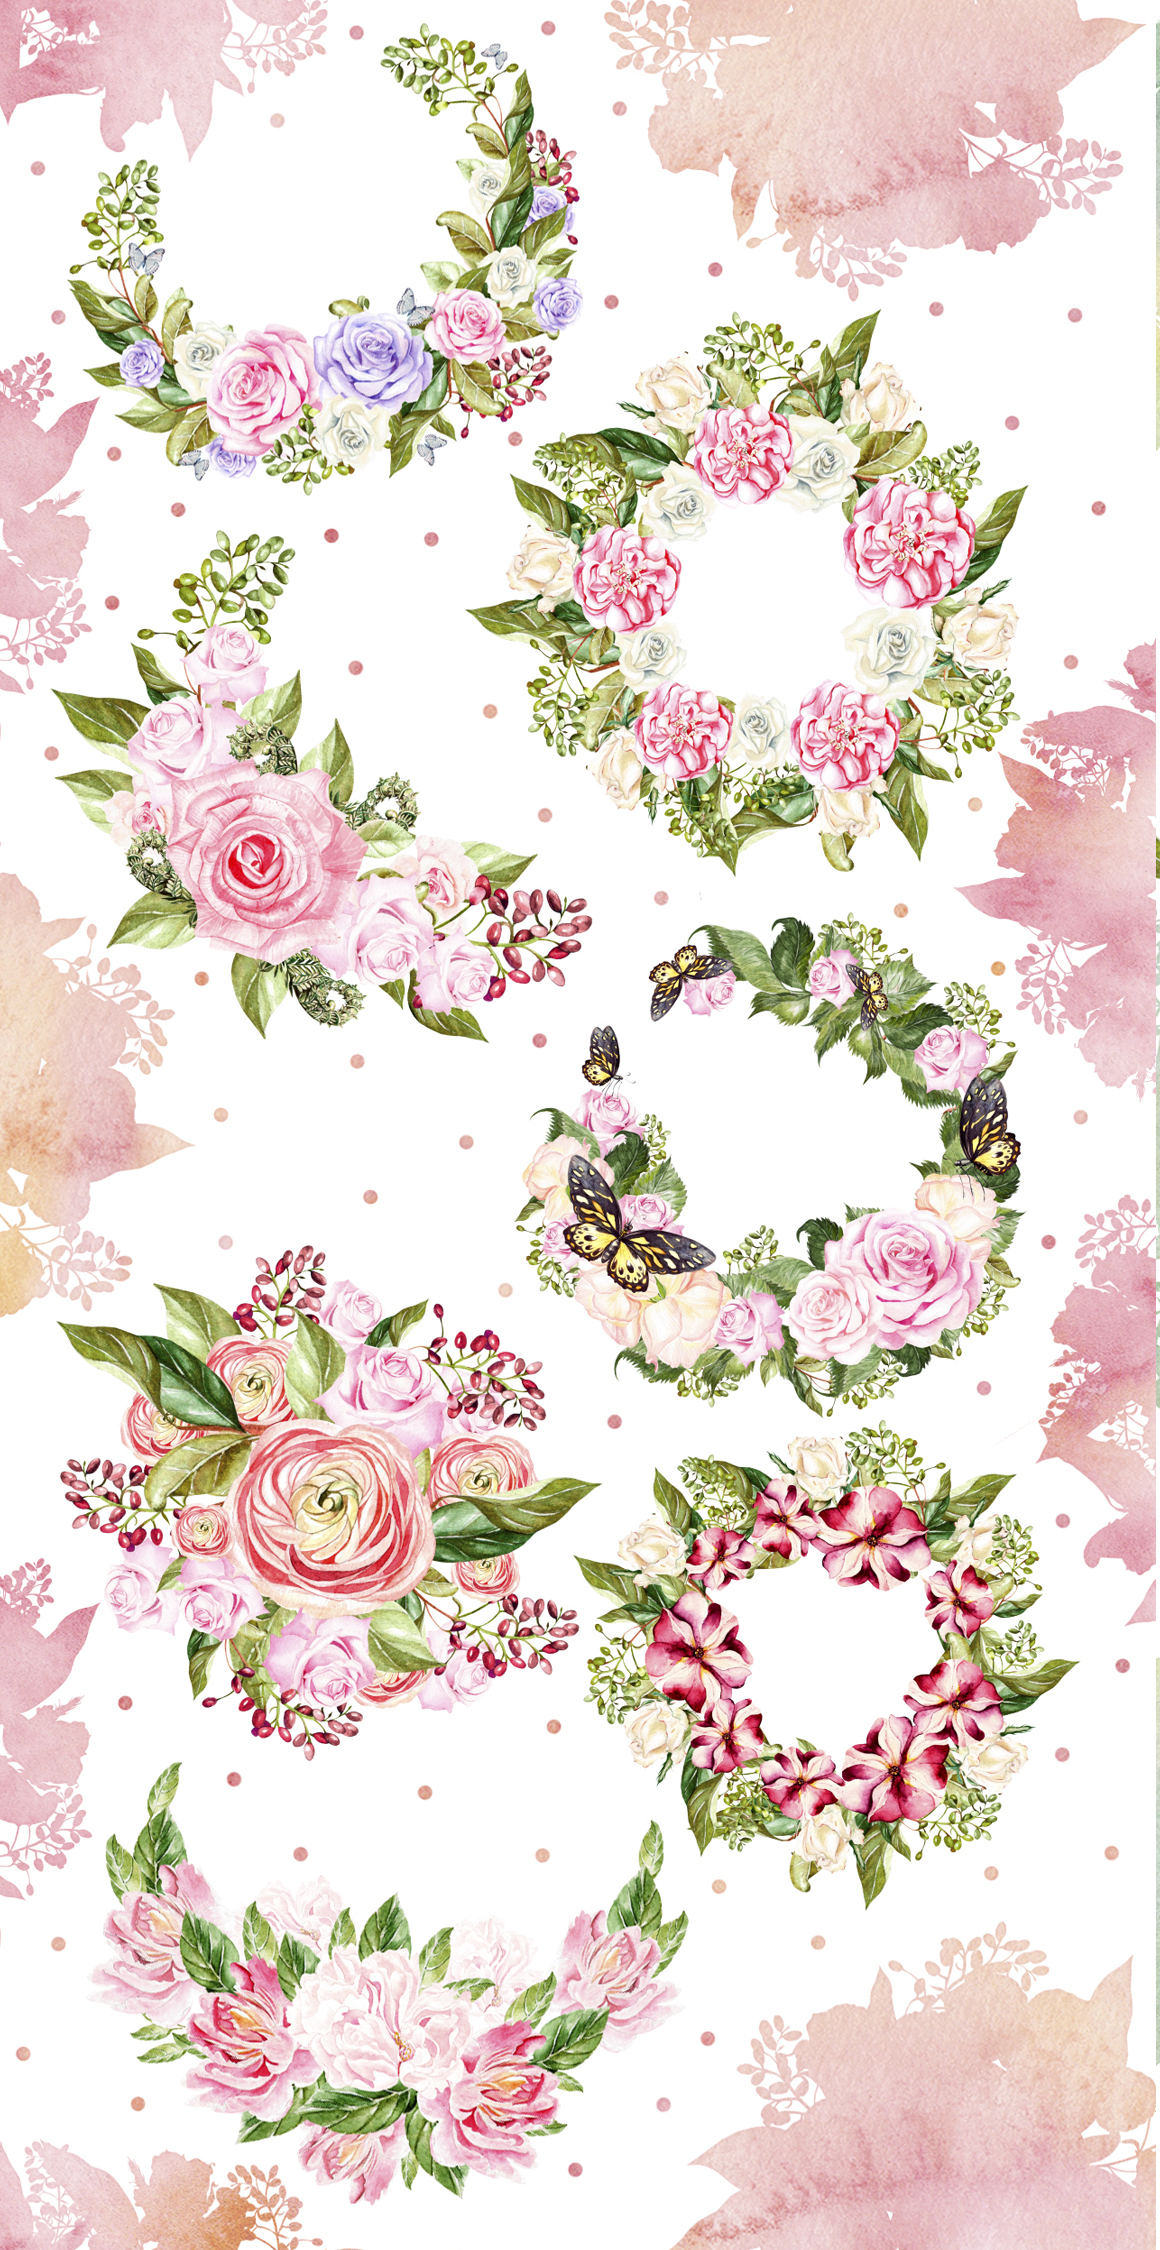 45 Hand Drawn Watercolor Bouquet & Wreath Pack